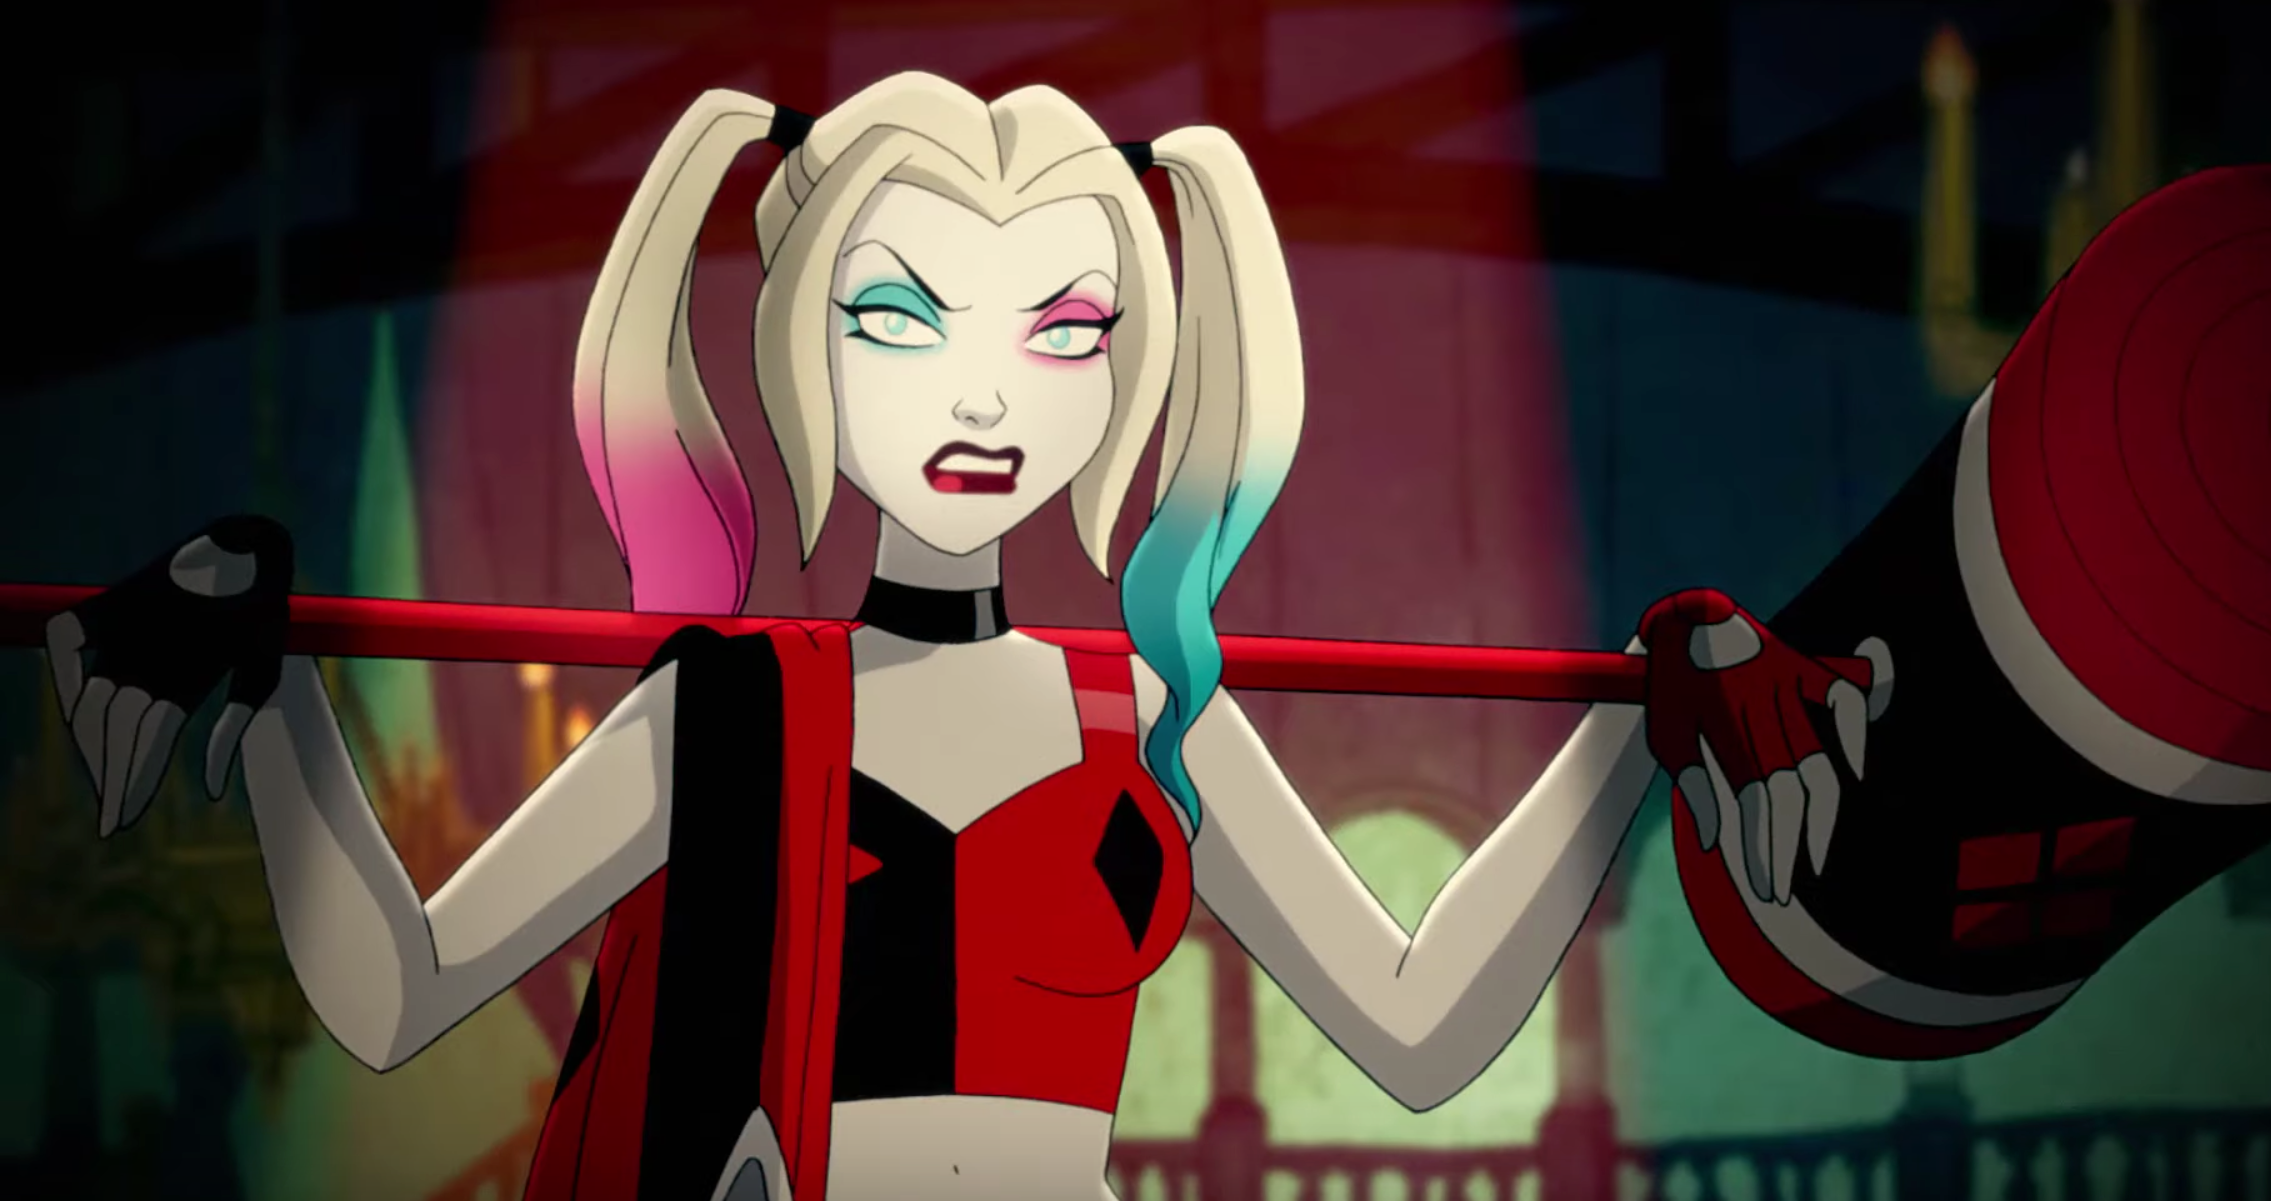 Harley Quinn Animated Series Trailer Debuts at Comic-Con